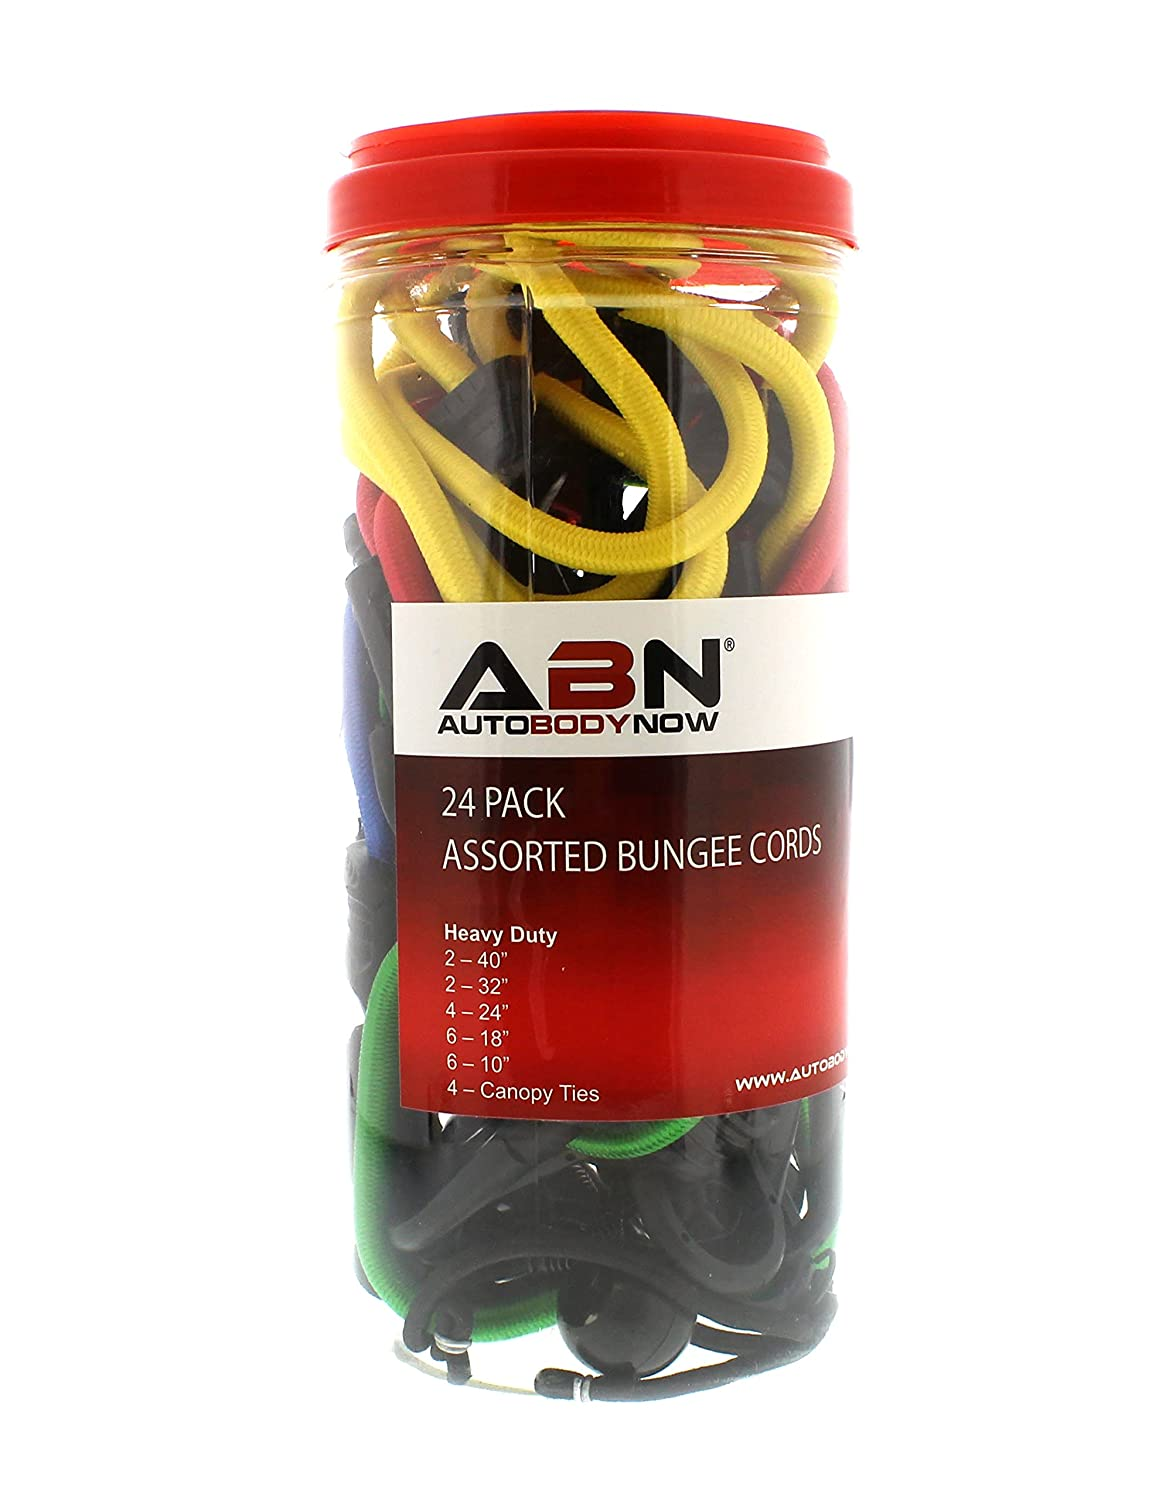 24 18 24 Pack ABN Heavy Duty Bungee Cord Assortment /& Canopy Ties 10 32 /& 40-Inch Straps